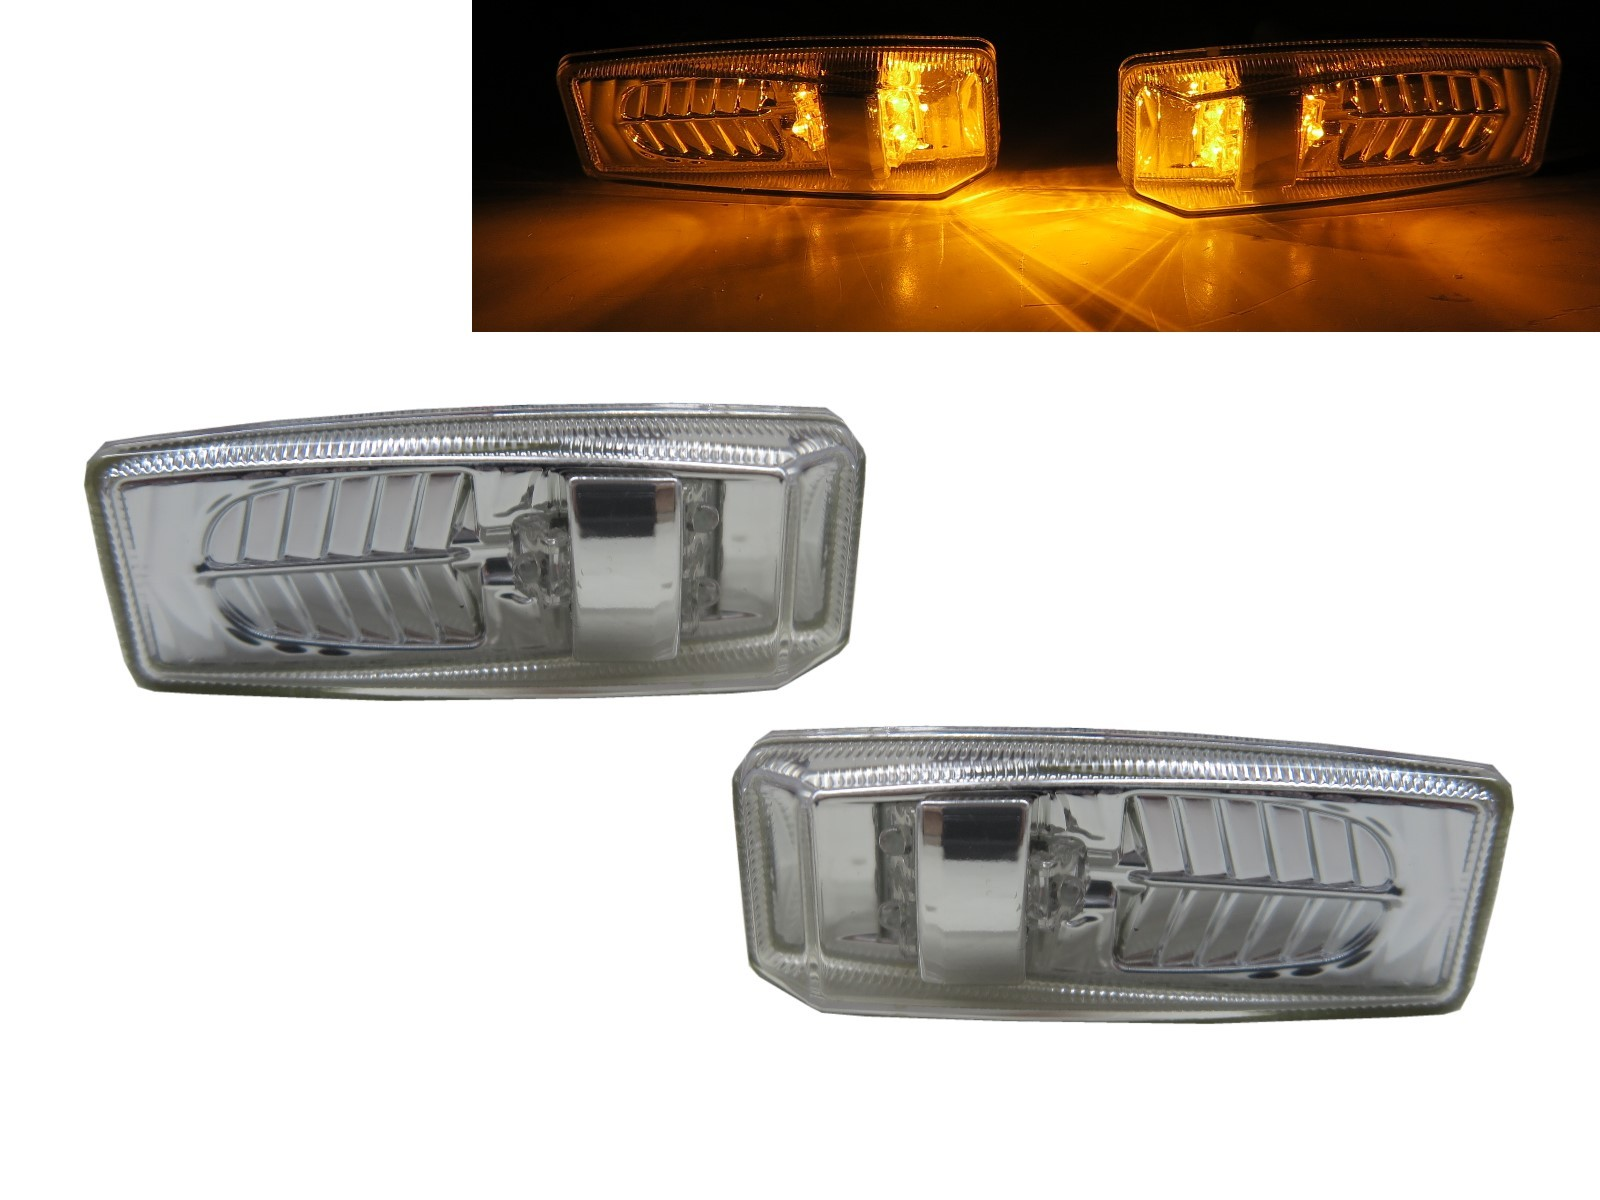 CrazyTheGod C-CLASS W201 190D 190E First generation 1982-1993 Sedan 4D LED Side Marker Light Lamp Chrome for Mercedes-Benz